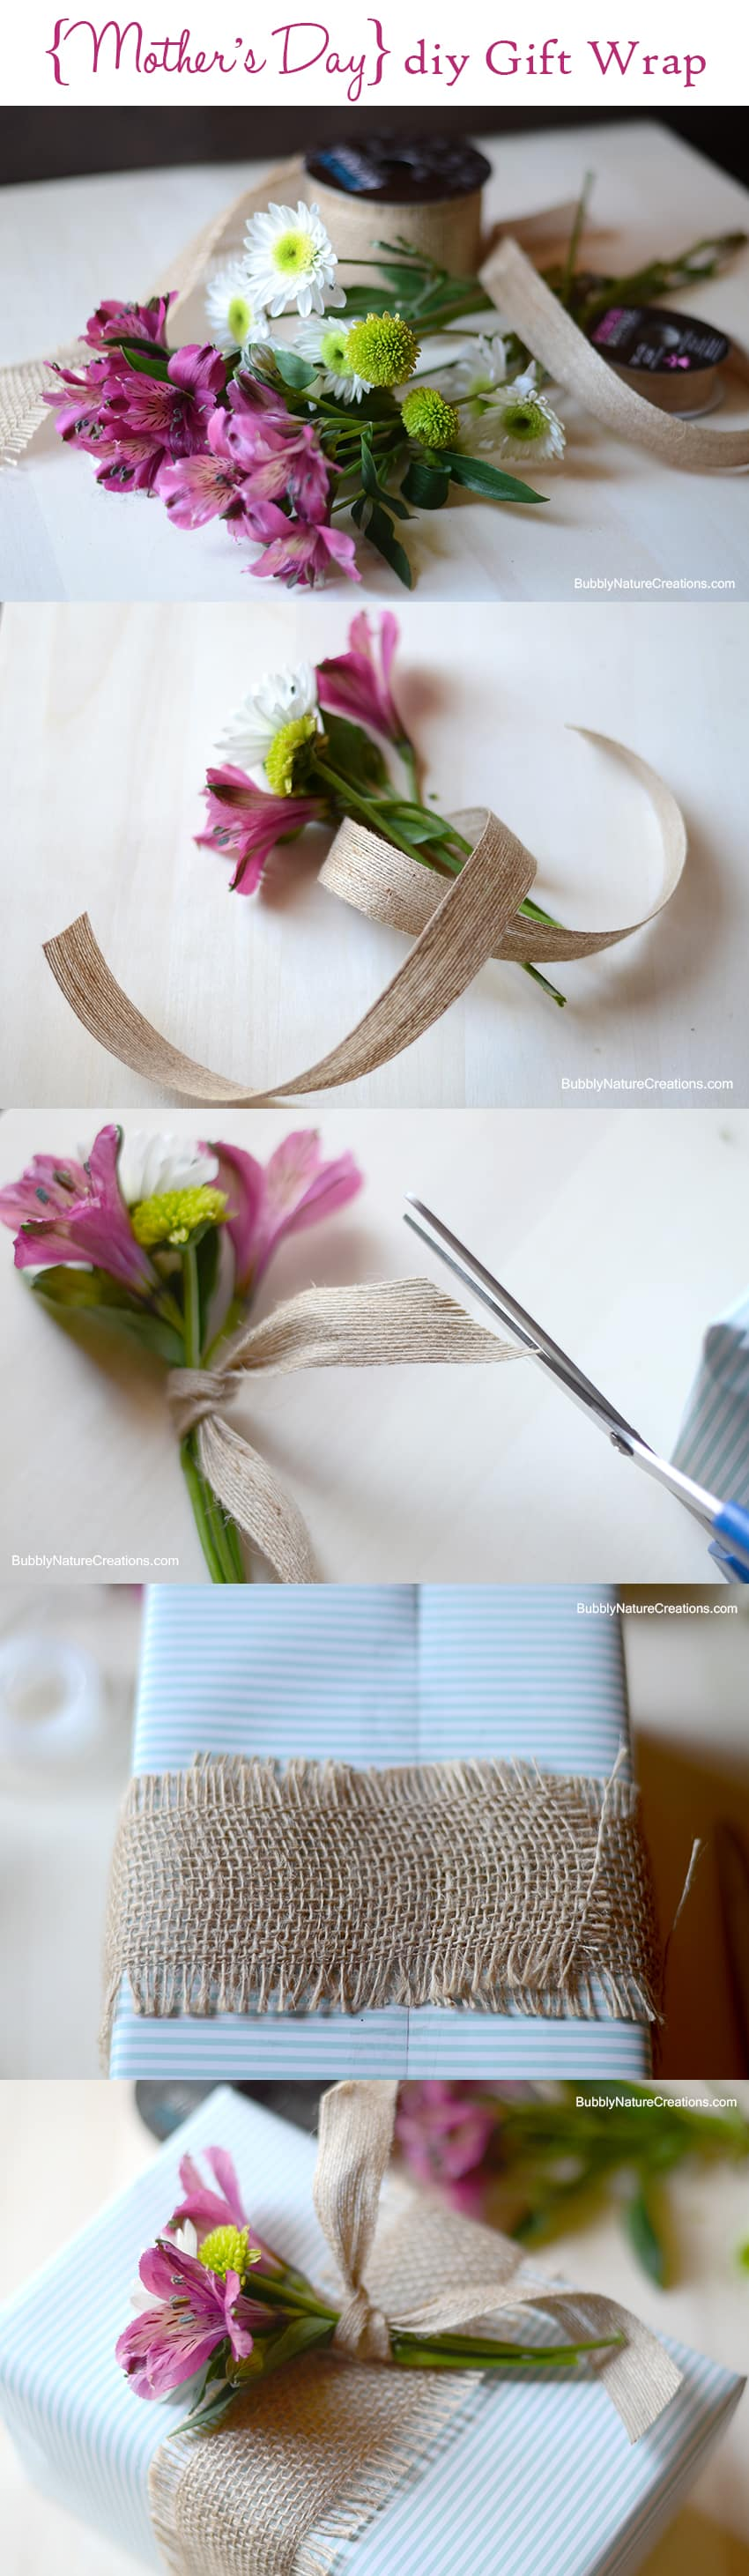 DIY Gift Wrap with Lilies is a beautiful way to embellish gifts!  This easy tutorial will show you how to use flowers to make gifts have that special touch.